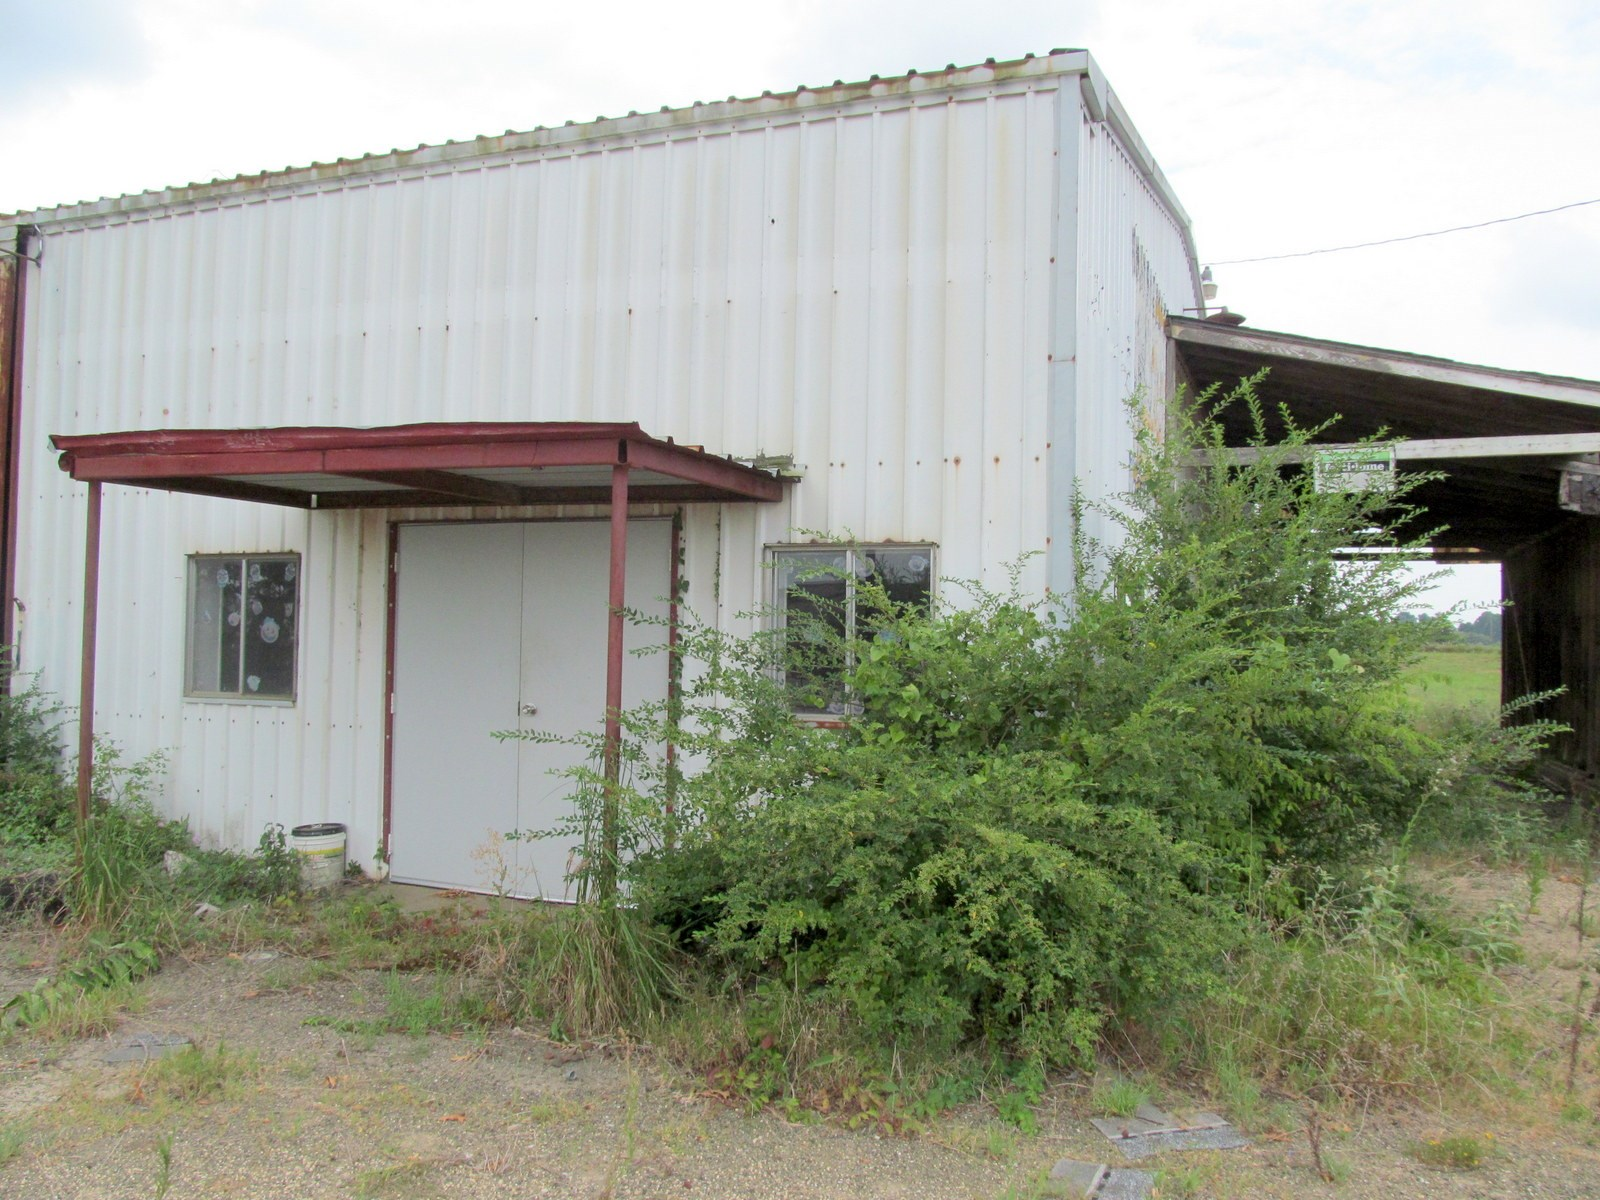 COMMERCIAL BUILDING - OLD FEED STORE - WINNSBORO, TEXAS